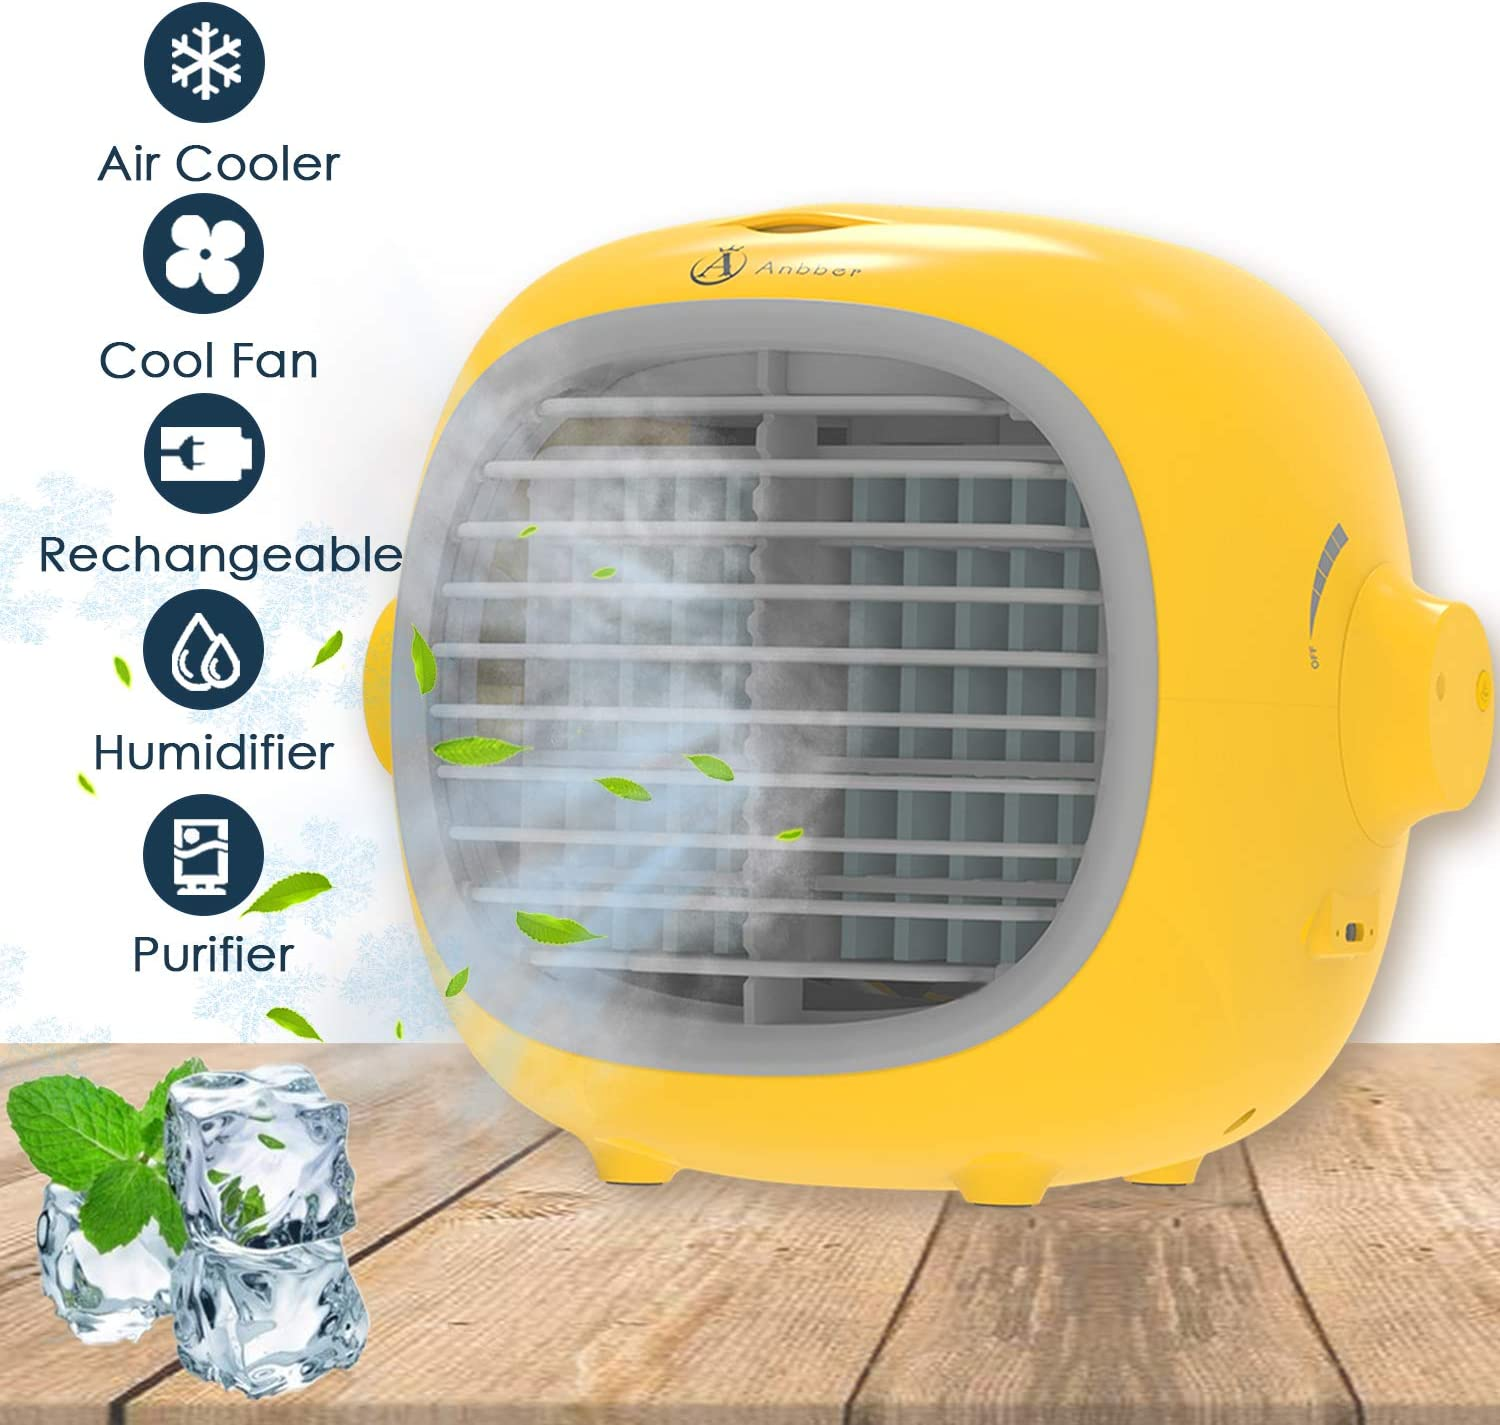 Portable Air Conditioner,Portable Cooler,Suitable for Bedside, Office and Study Room.Three Wind Level Adjust Small Desktop Fan,Quiet Personal Table Fan Mini Evaporative Air Circulator Cooler